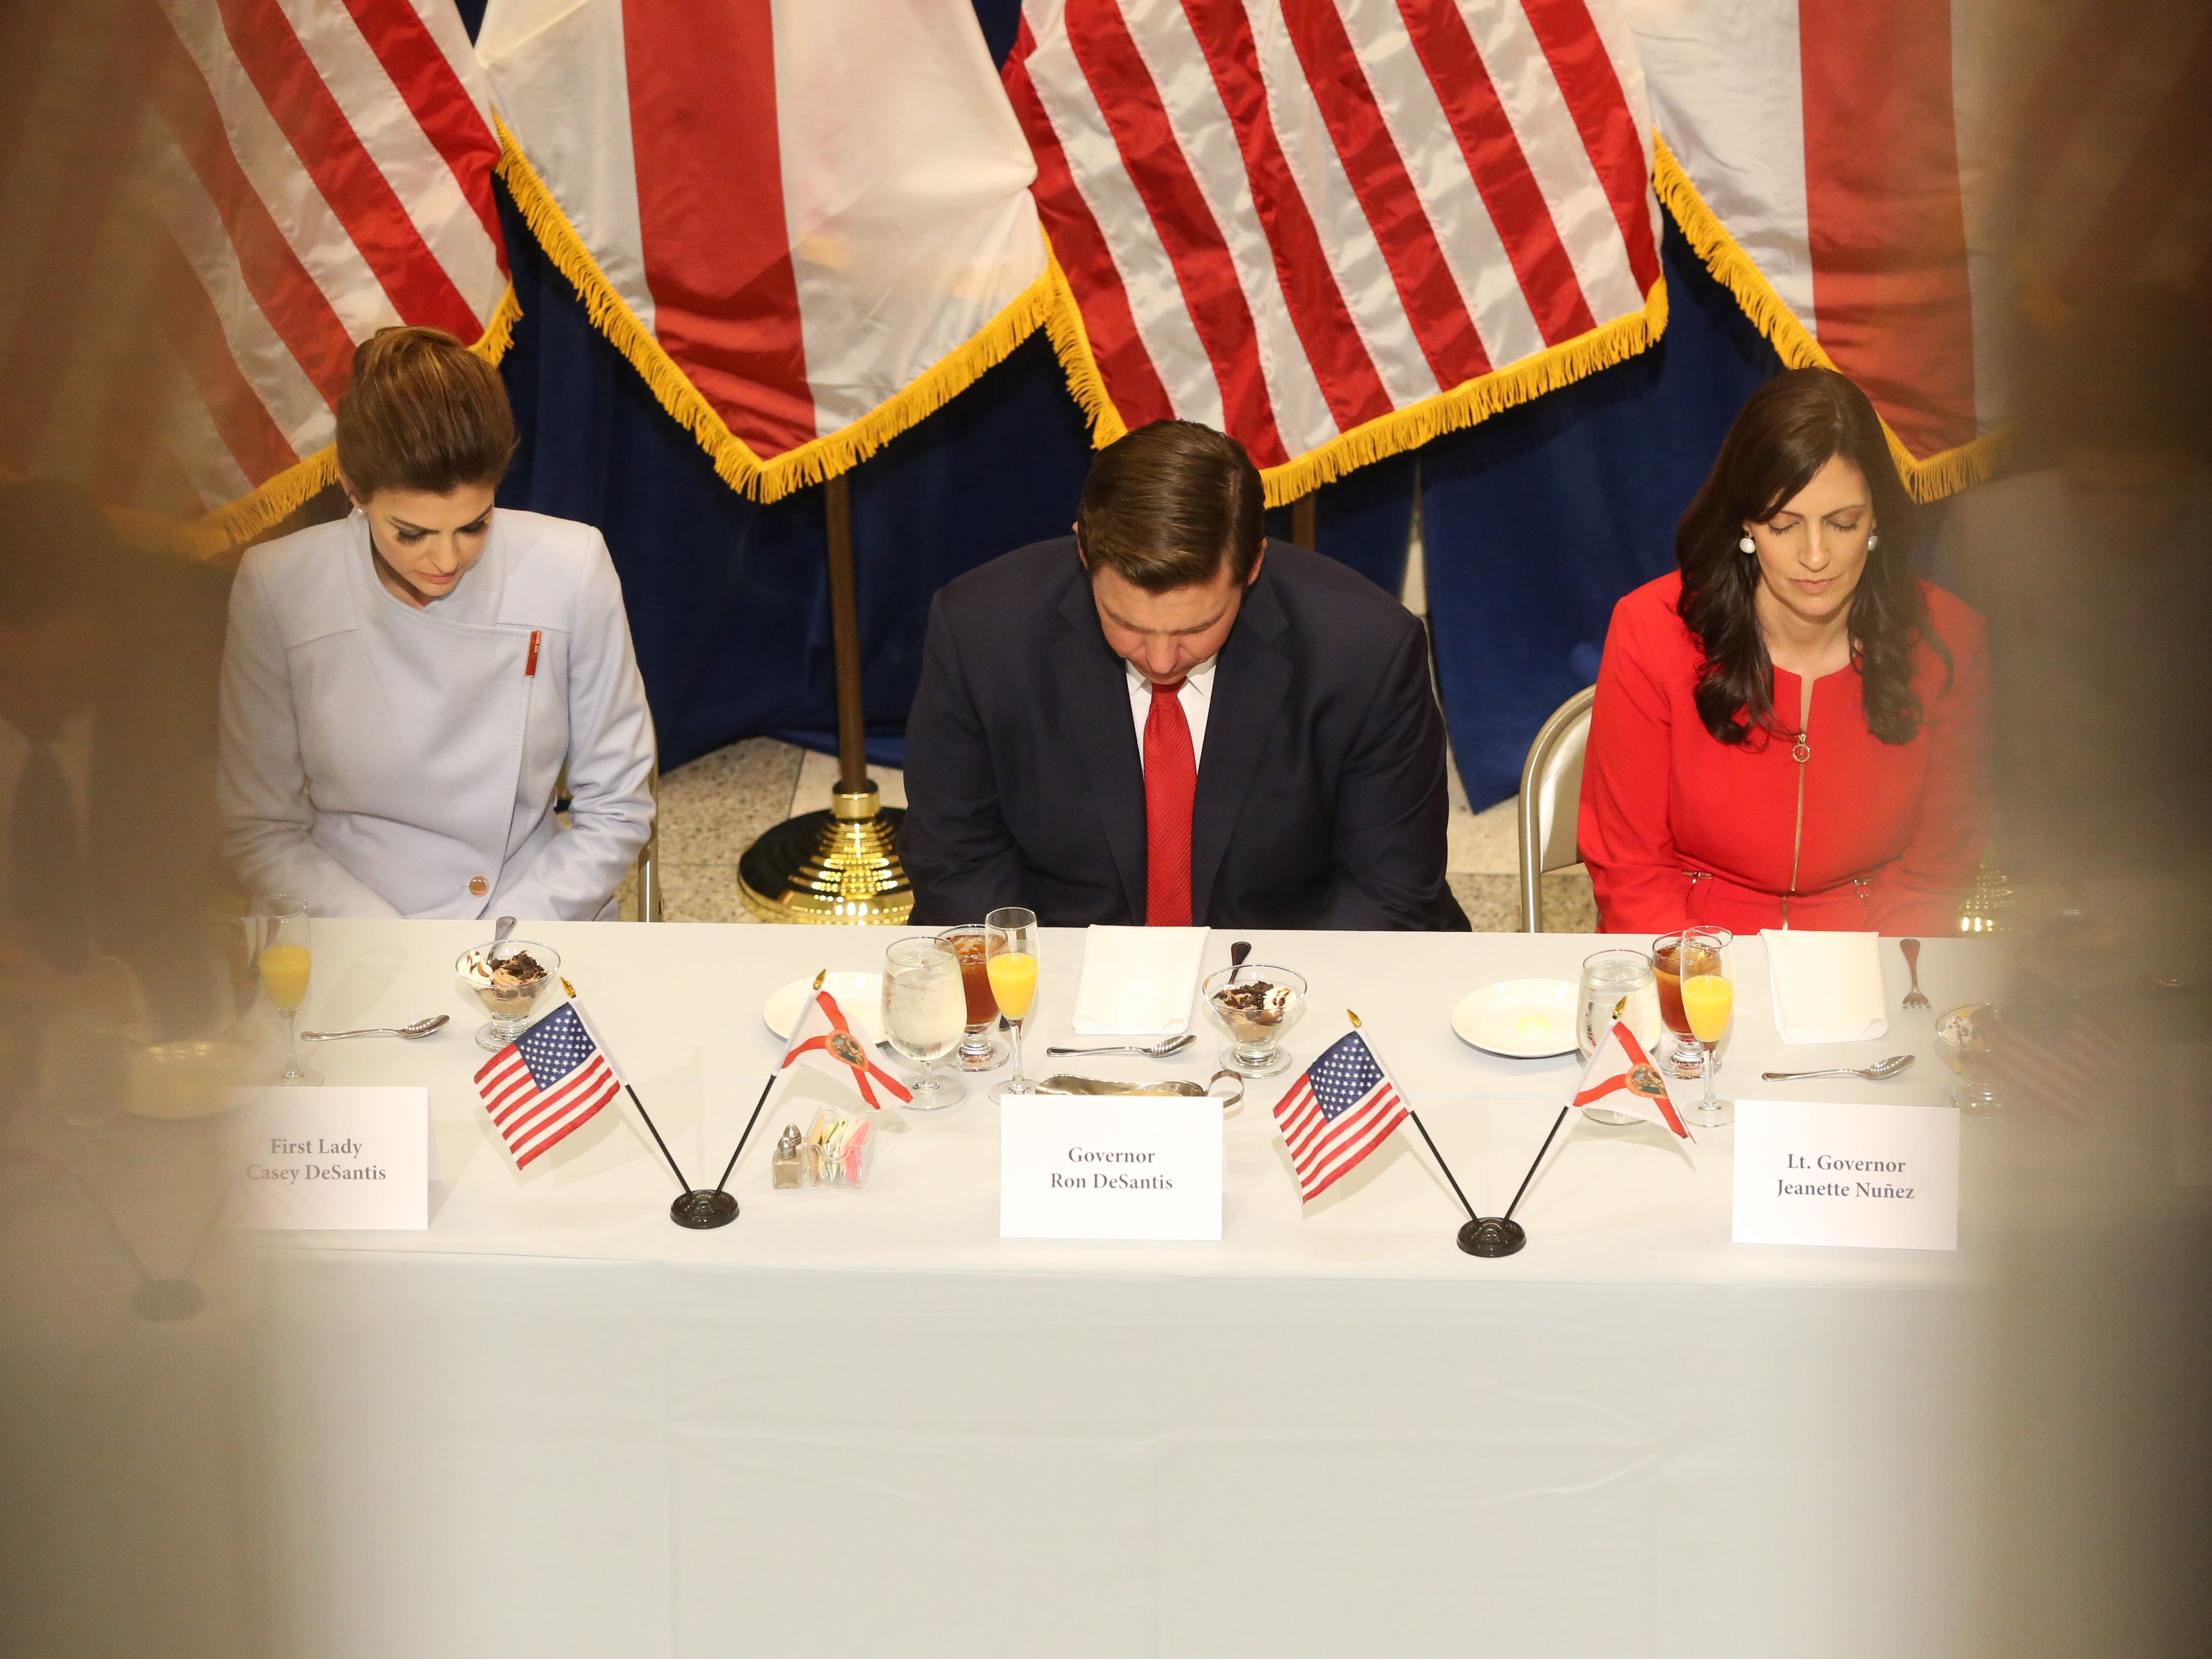 For the first time in Inaugural history, Gov. Ron DeSantis addresses FloridaÕs Legislative leaders and Cabinet officials. DeSantis discusses his plans to work with our stateÕs elected leaders to achieve a Bold Vision for a Brighter Future, Tuesday, Jan. 8, 2019. First lady Casey DeSantis, left, Gov. Ron DeSantis, and Lt. Gov. Jeanette Nunez, bow their heads as a prayer is said before the luncheon.